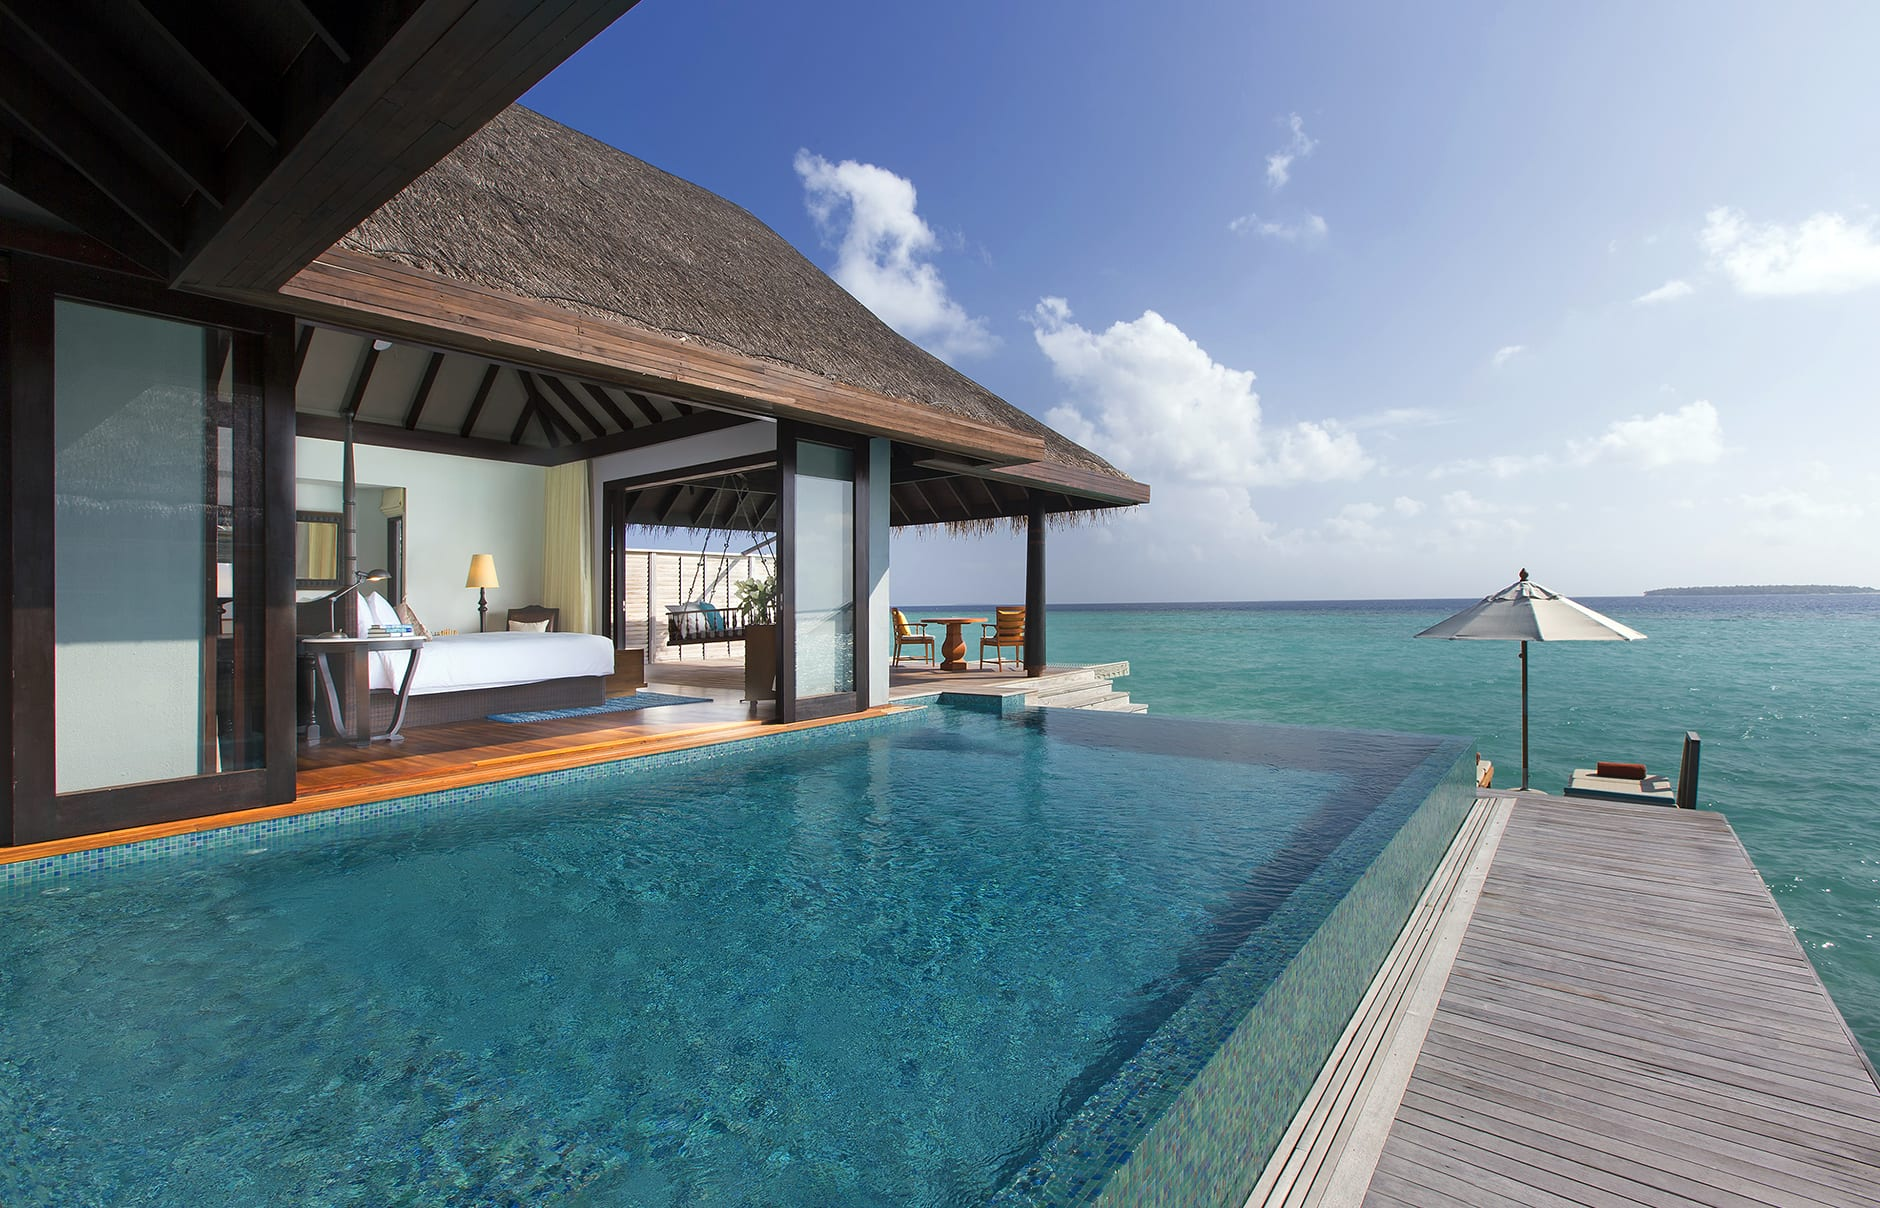 Luxury Pool Villas Maldives: Anantara Kihavah Villas « Luxury Hotels TravelPlusStyle